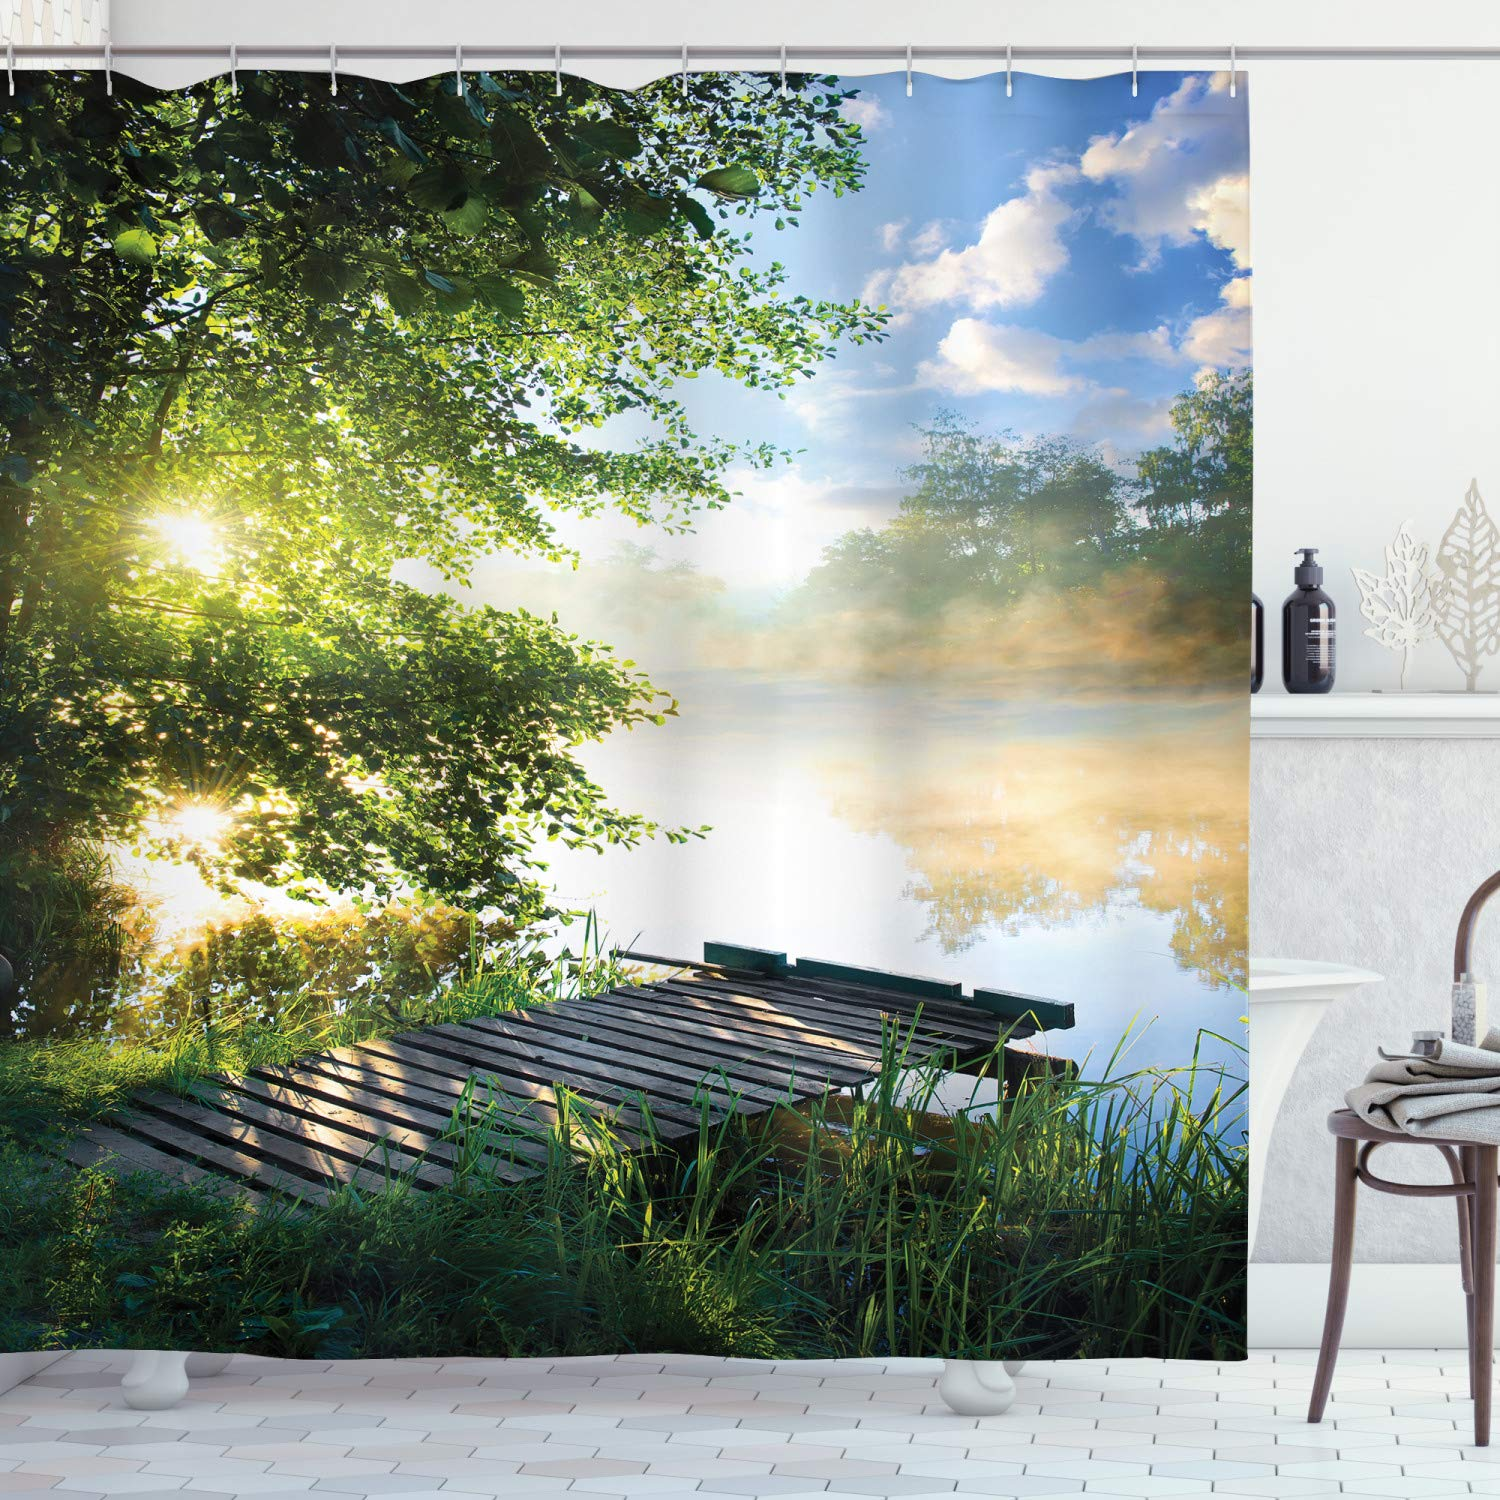 """Ambesonne Landscape Shower Curtain, Fishing Pier by River in The Morning with Clouds and Trees Nature Image, Cloth Fabric Bathroom Decor Set with Hooks, 84"""" Long Extra, Green Blue"""